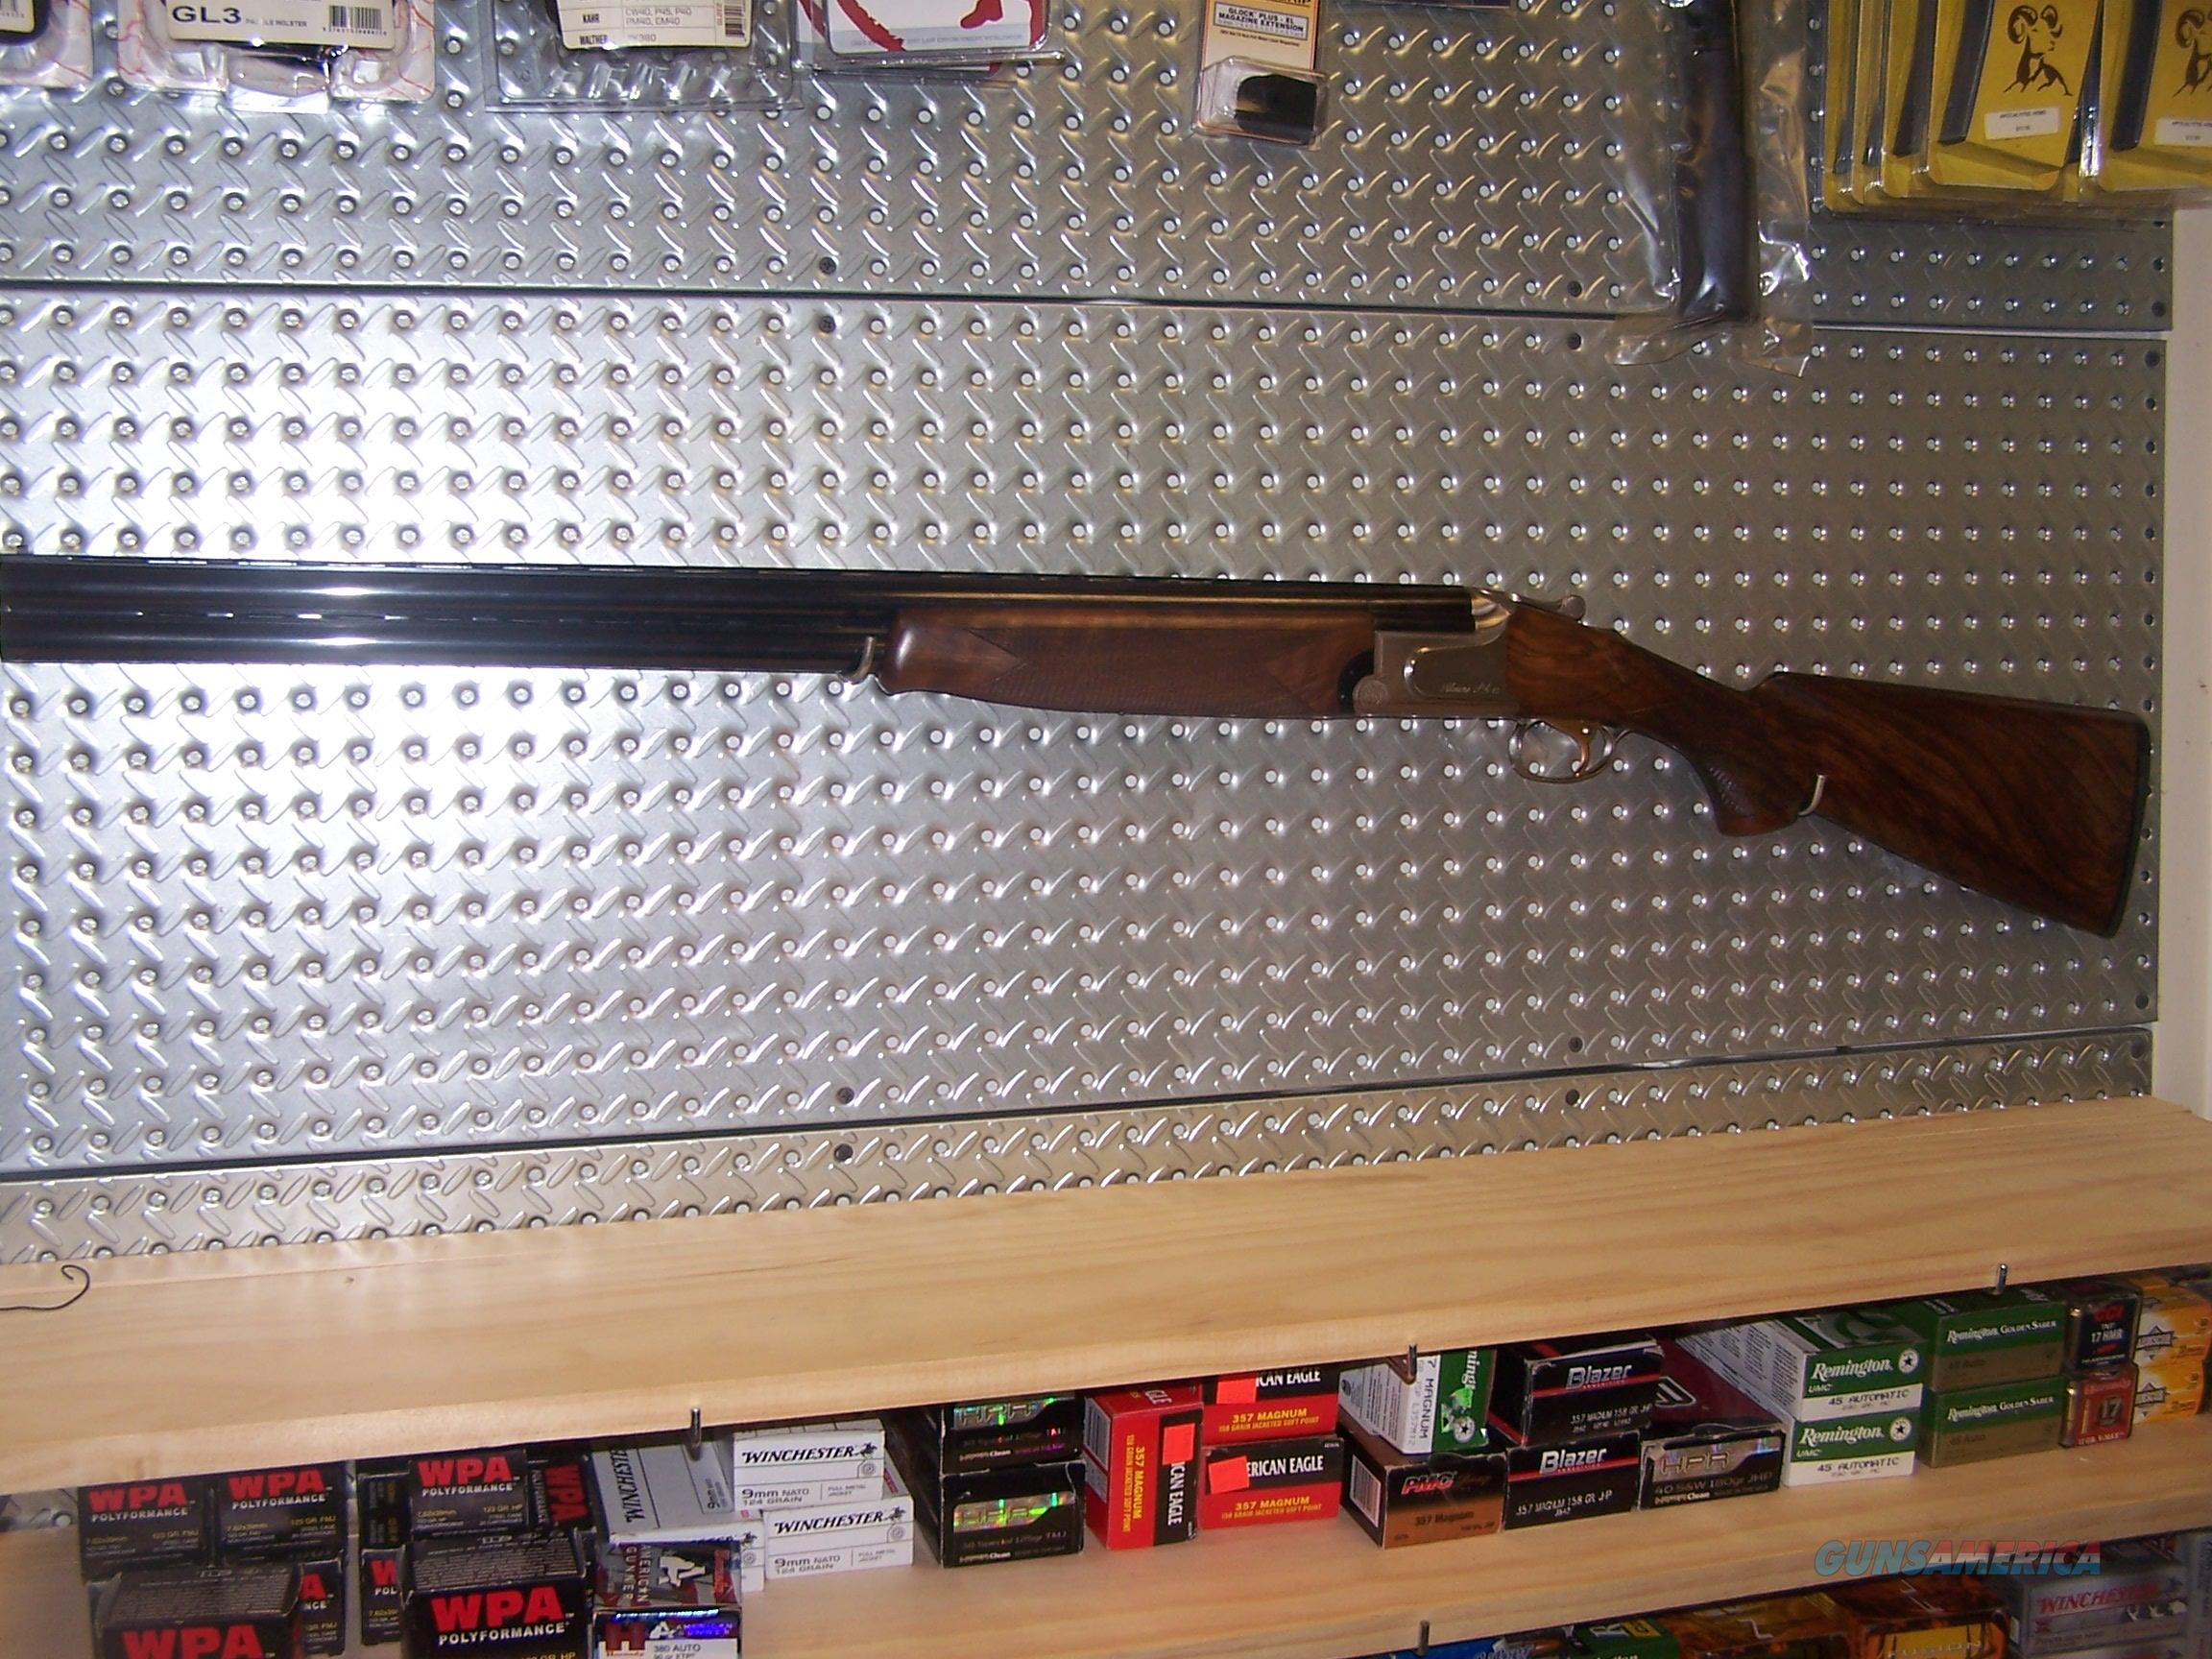 "PRE-OWNED FRANCHI ALCIONE SL-12 FIELD O/U 12GA. RARE FIND!28""VR. 5 CHOKE TUBES.  ALMOST PERFECT ! READ ALL THE DETAILS !!!  Guns > Shotguns > Franchi Shotguns > Over/Under > Hunting"